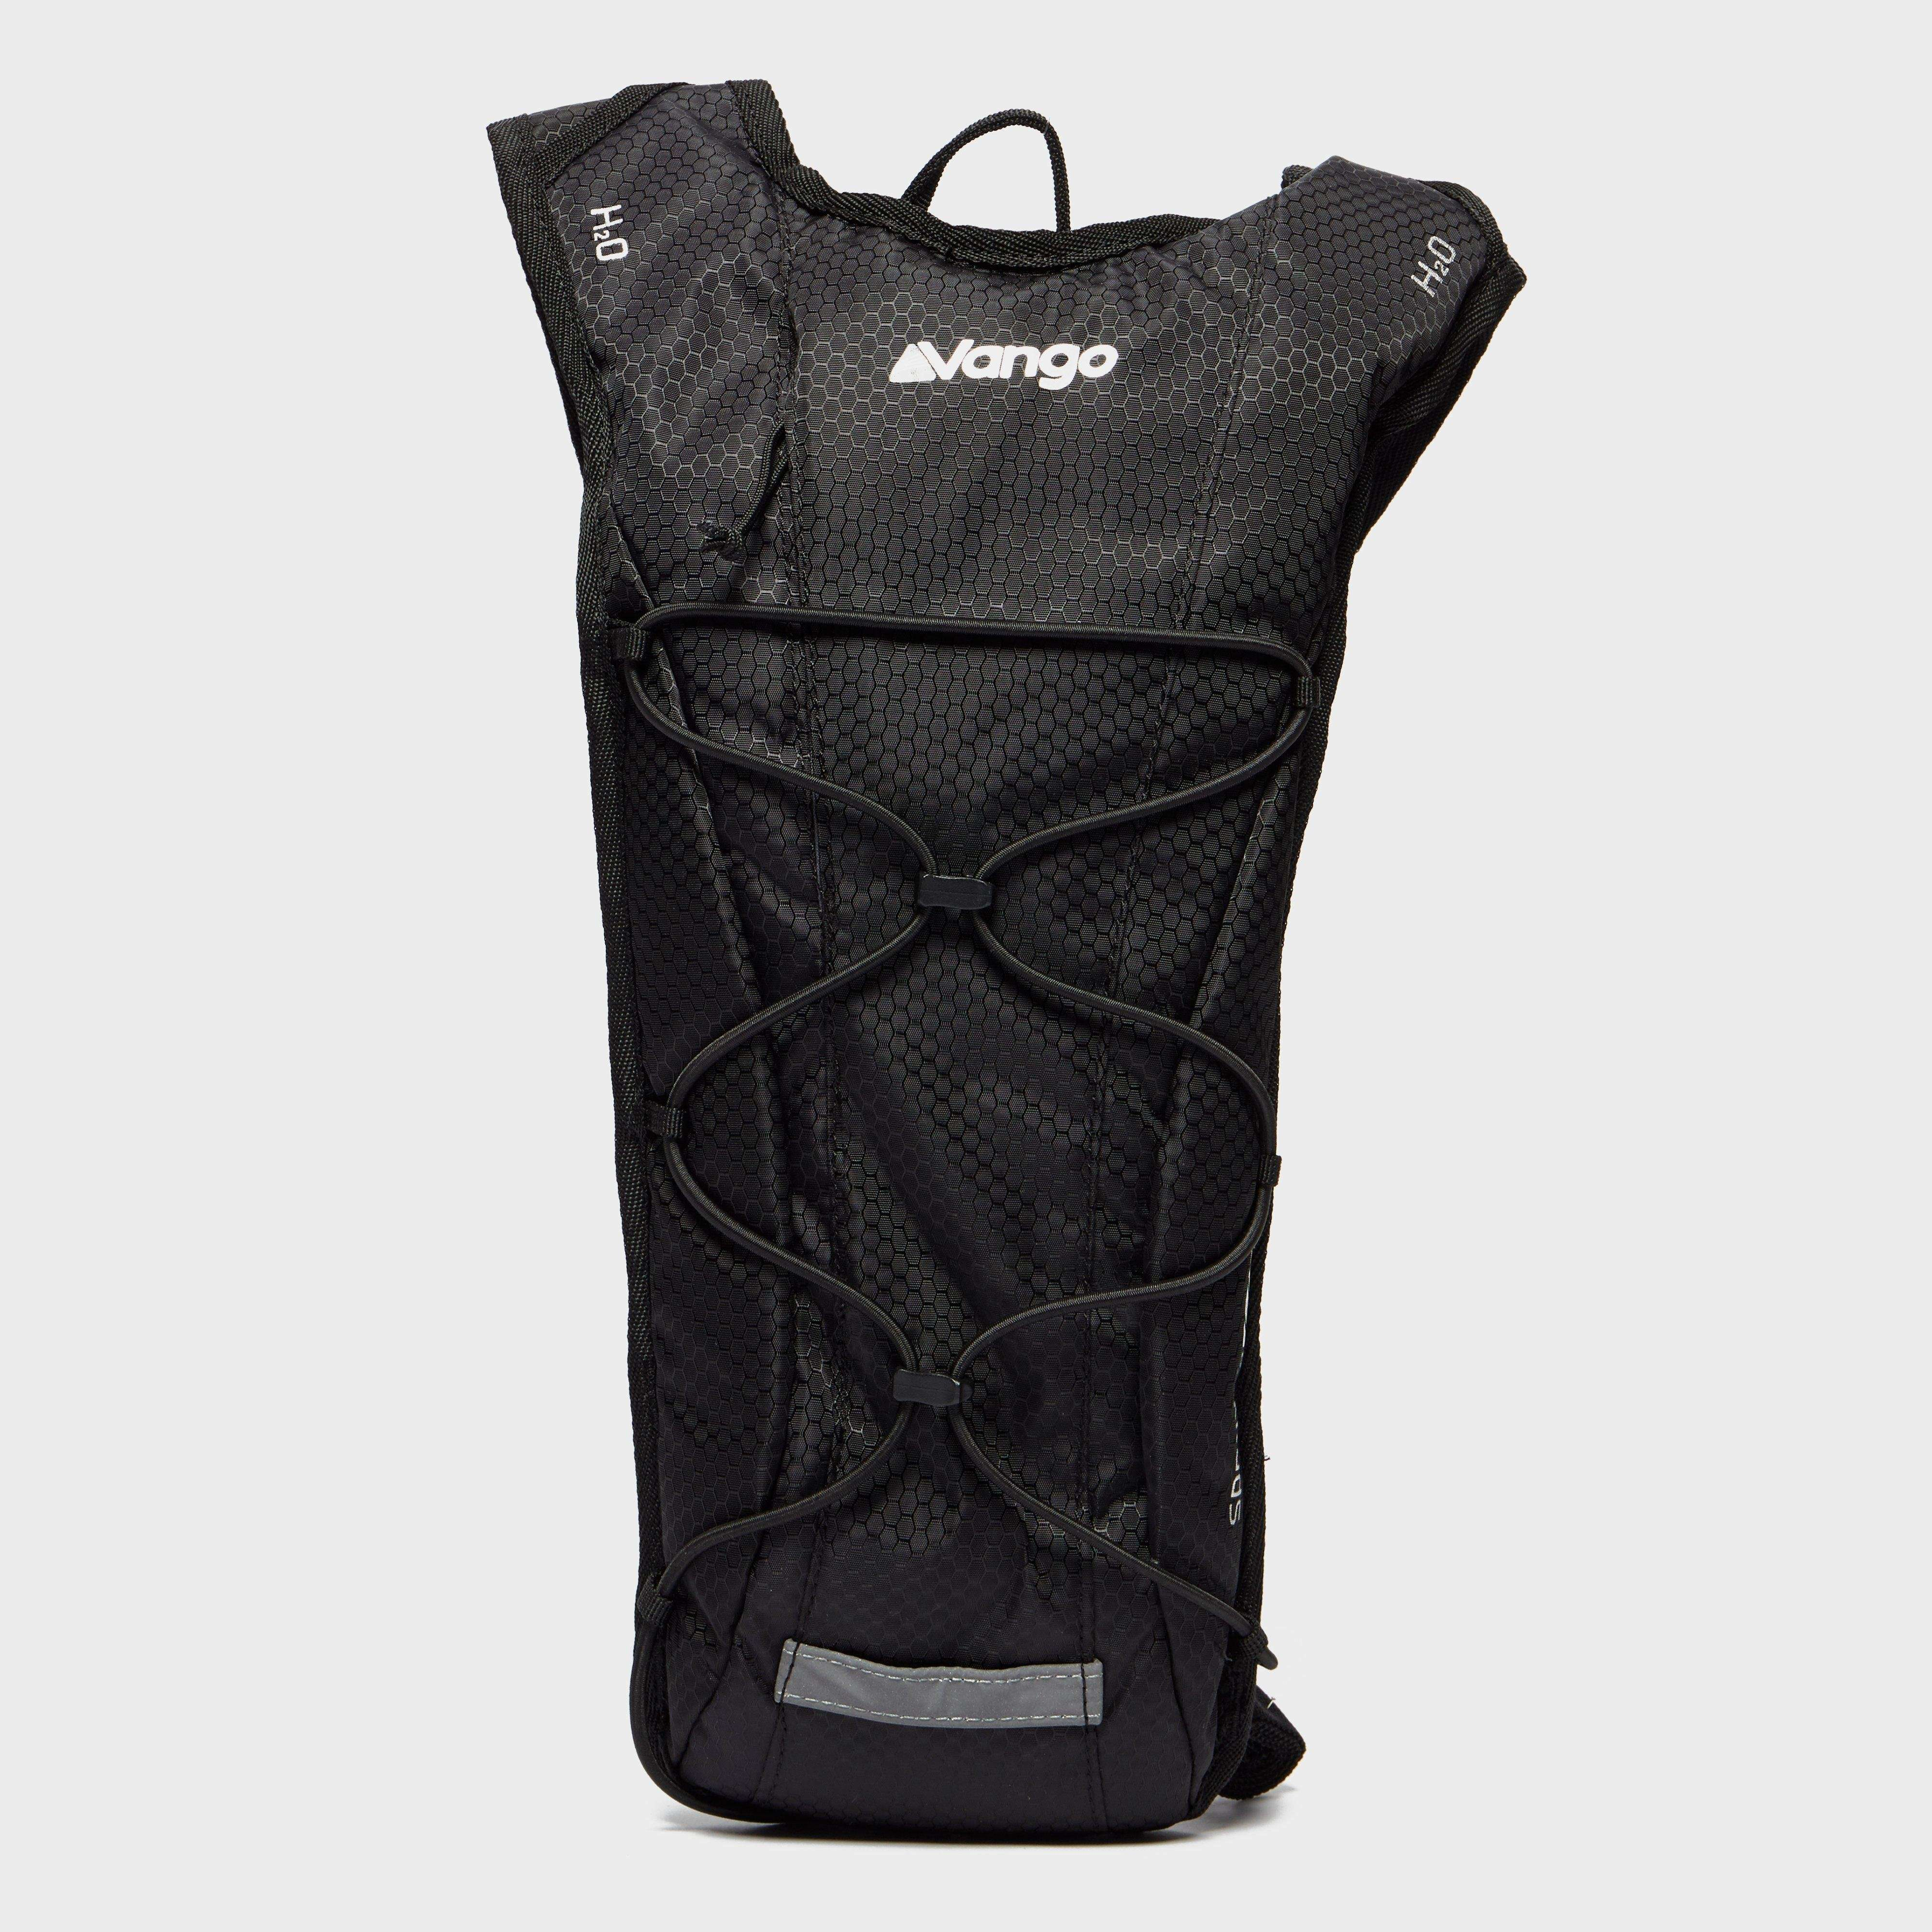 VANGO Sprint 3 Hydration Pack